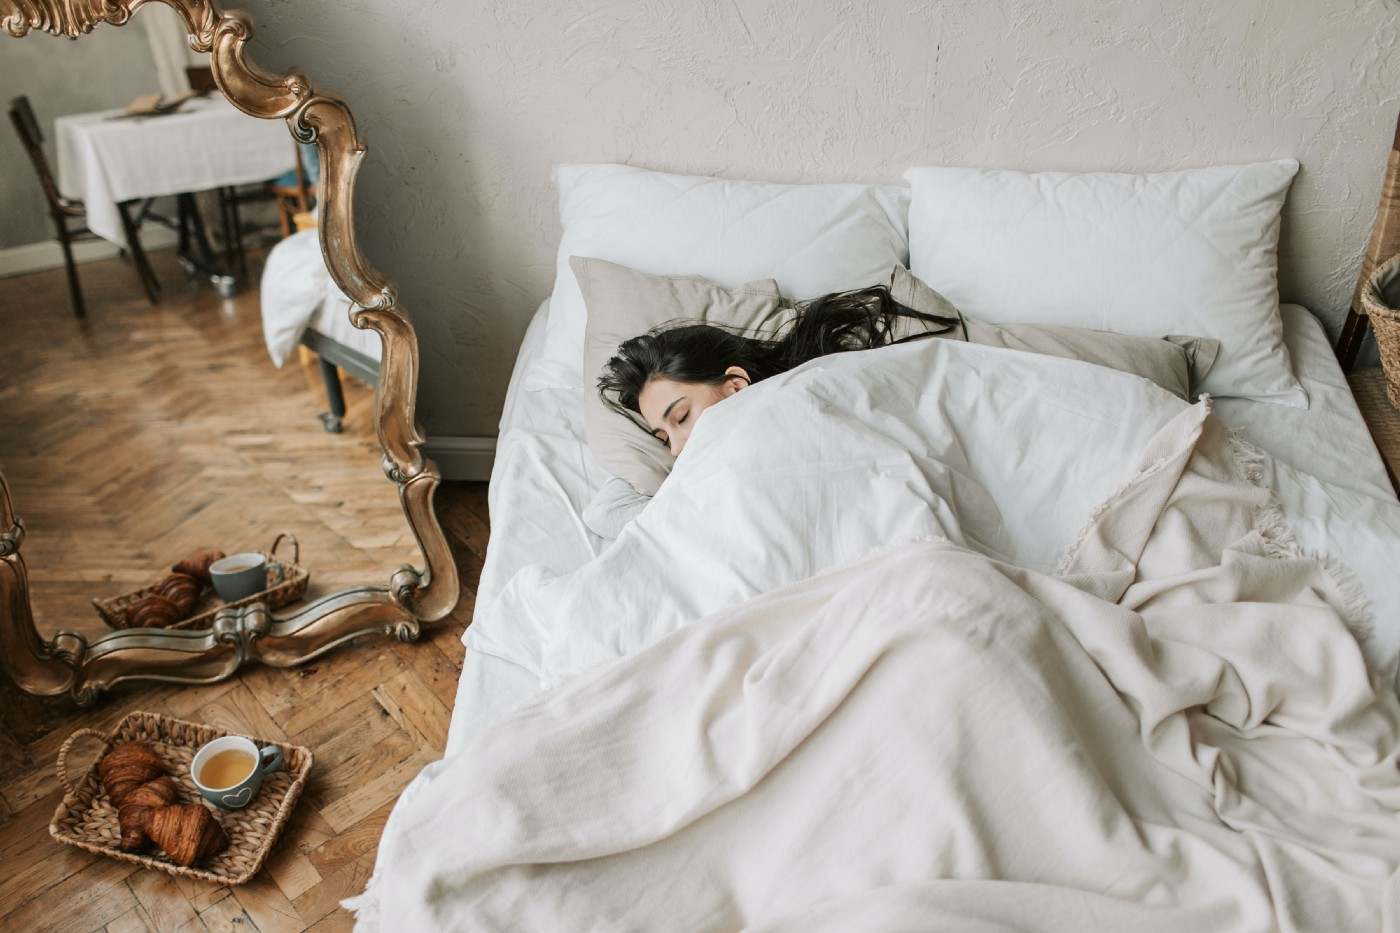 An individual covered in white blankets still in bed